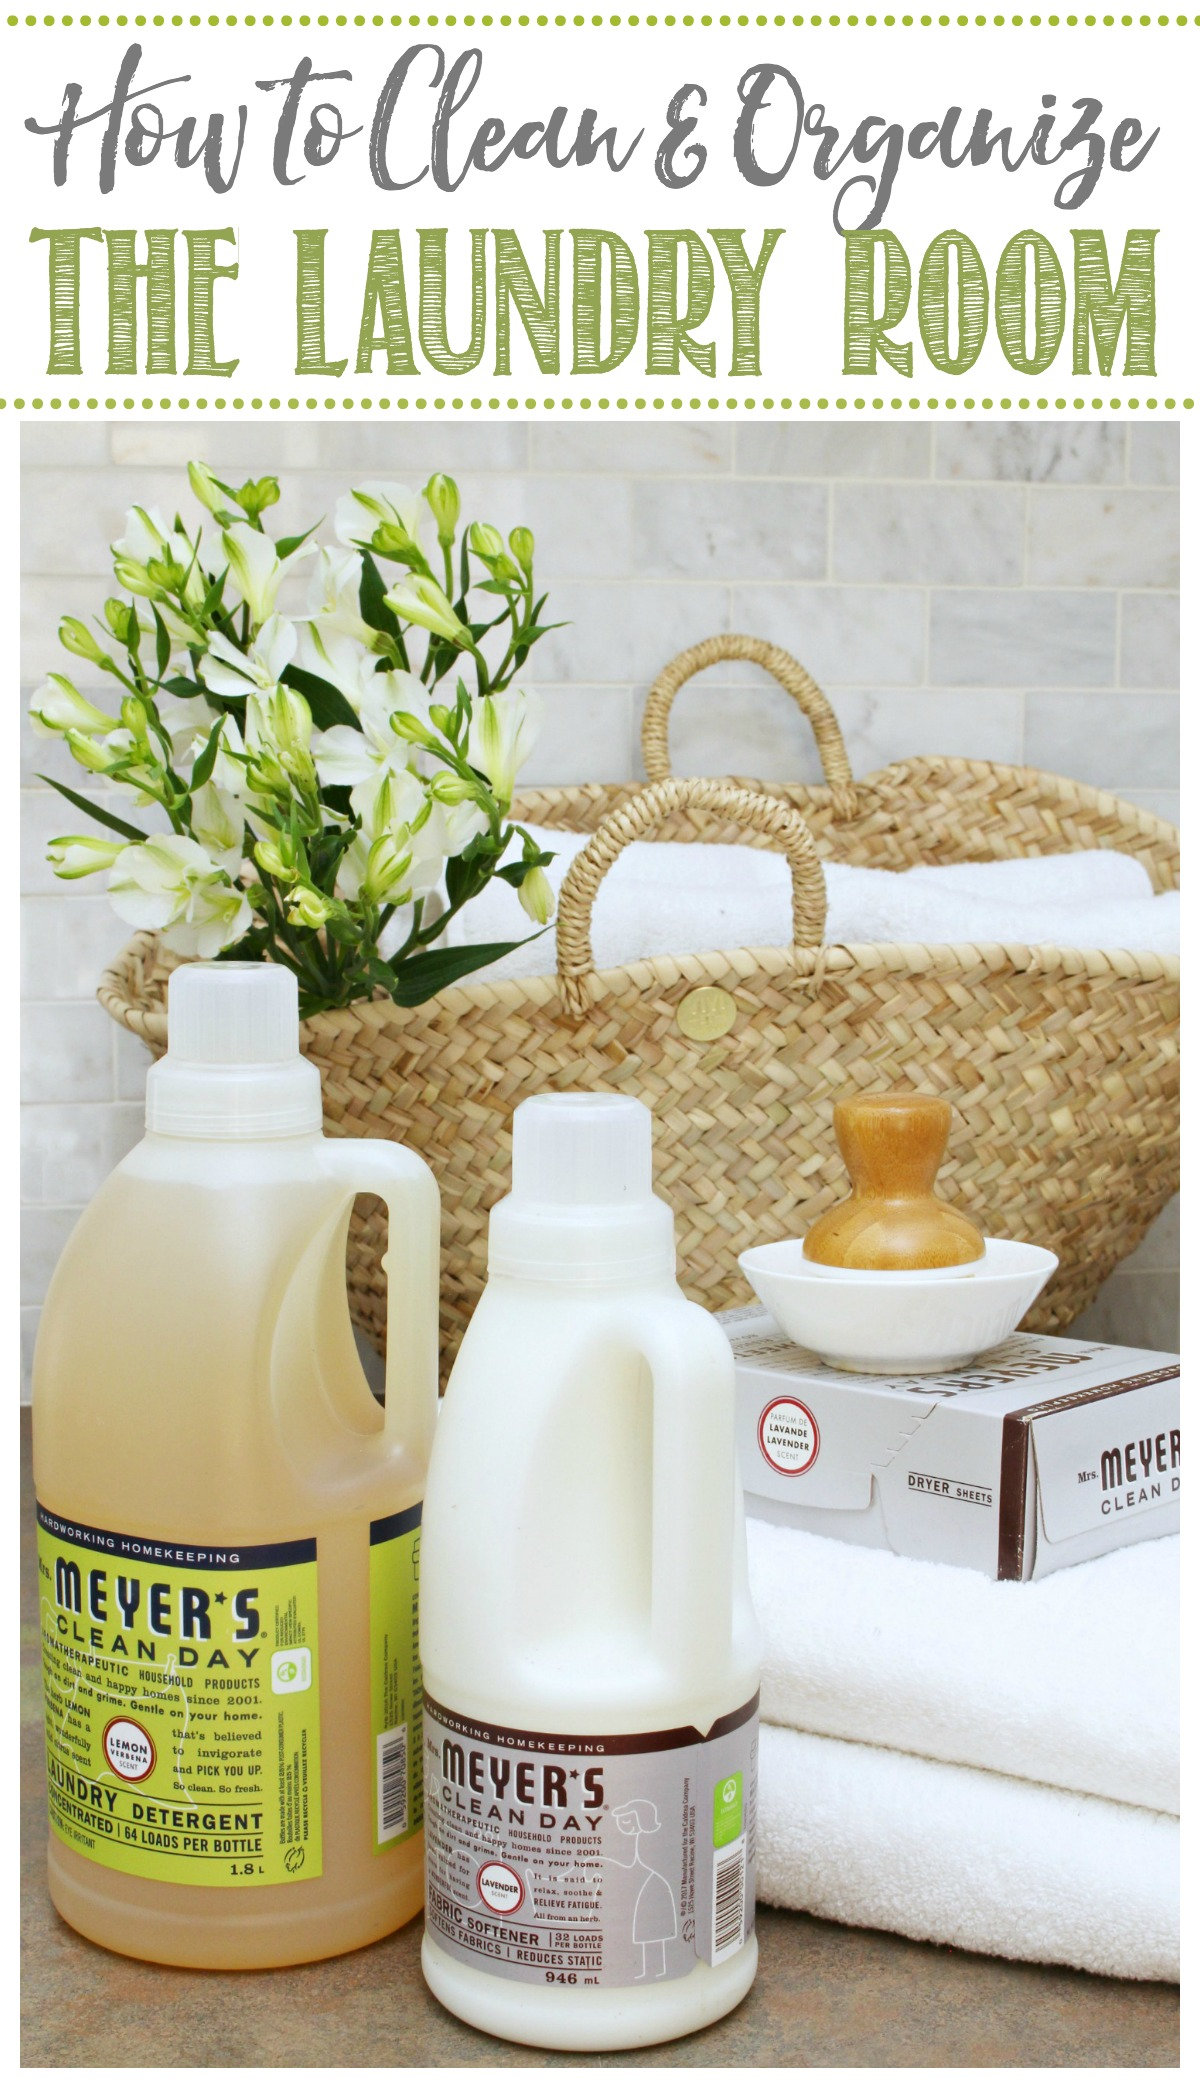 Laundry basket with Mrs. Meyers laundry products.